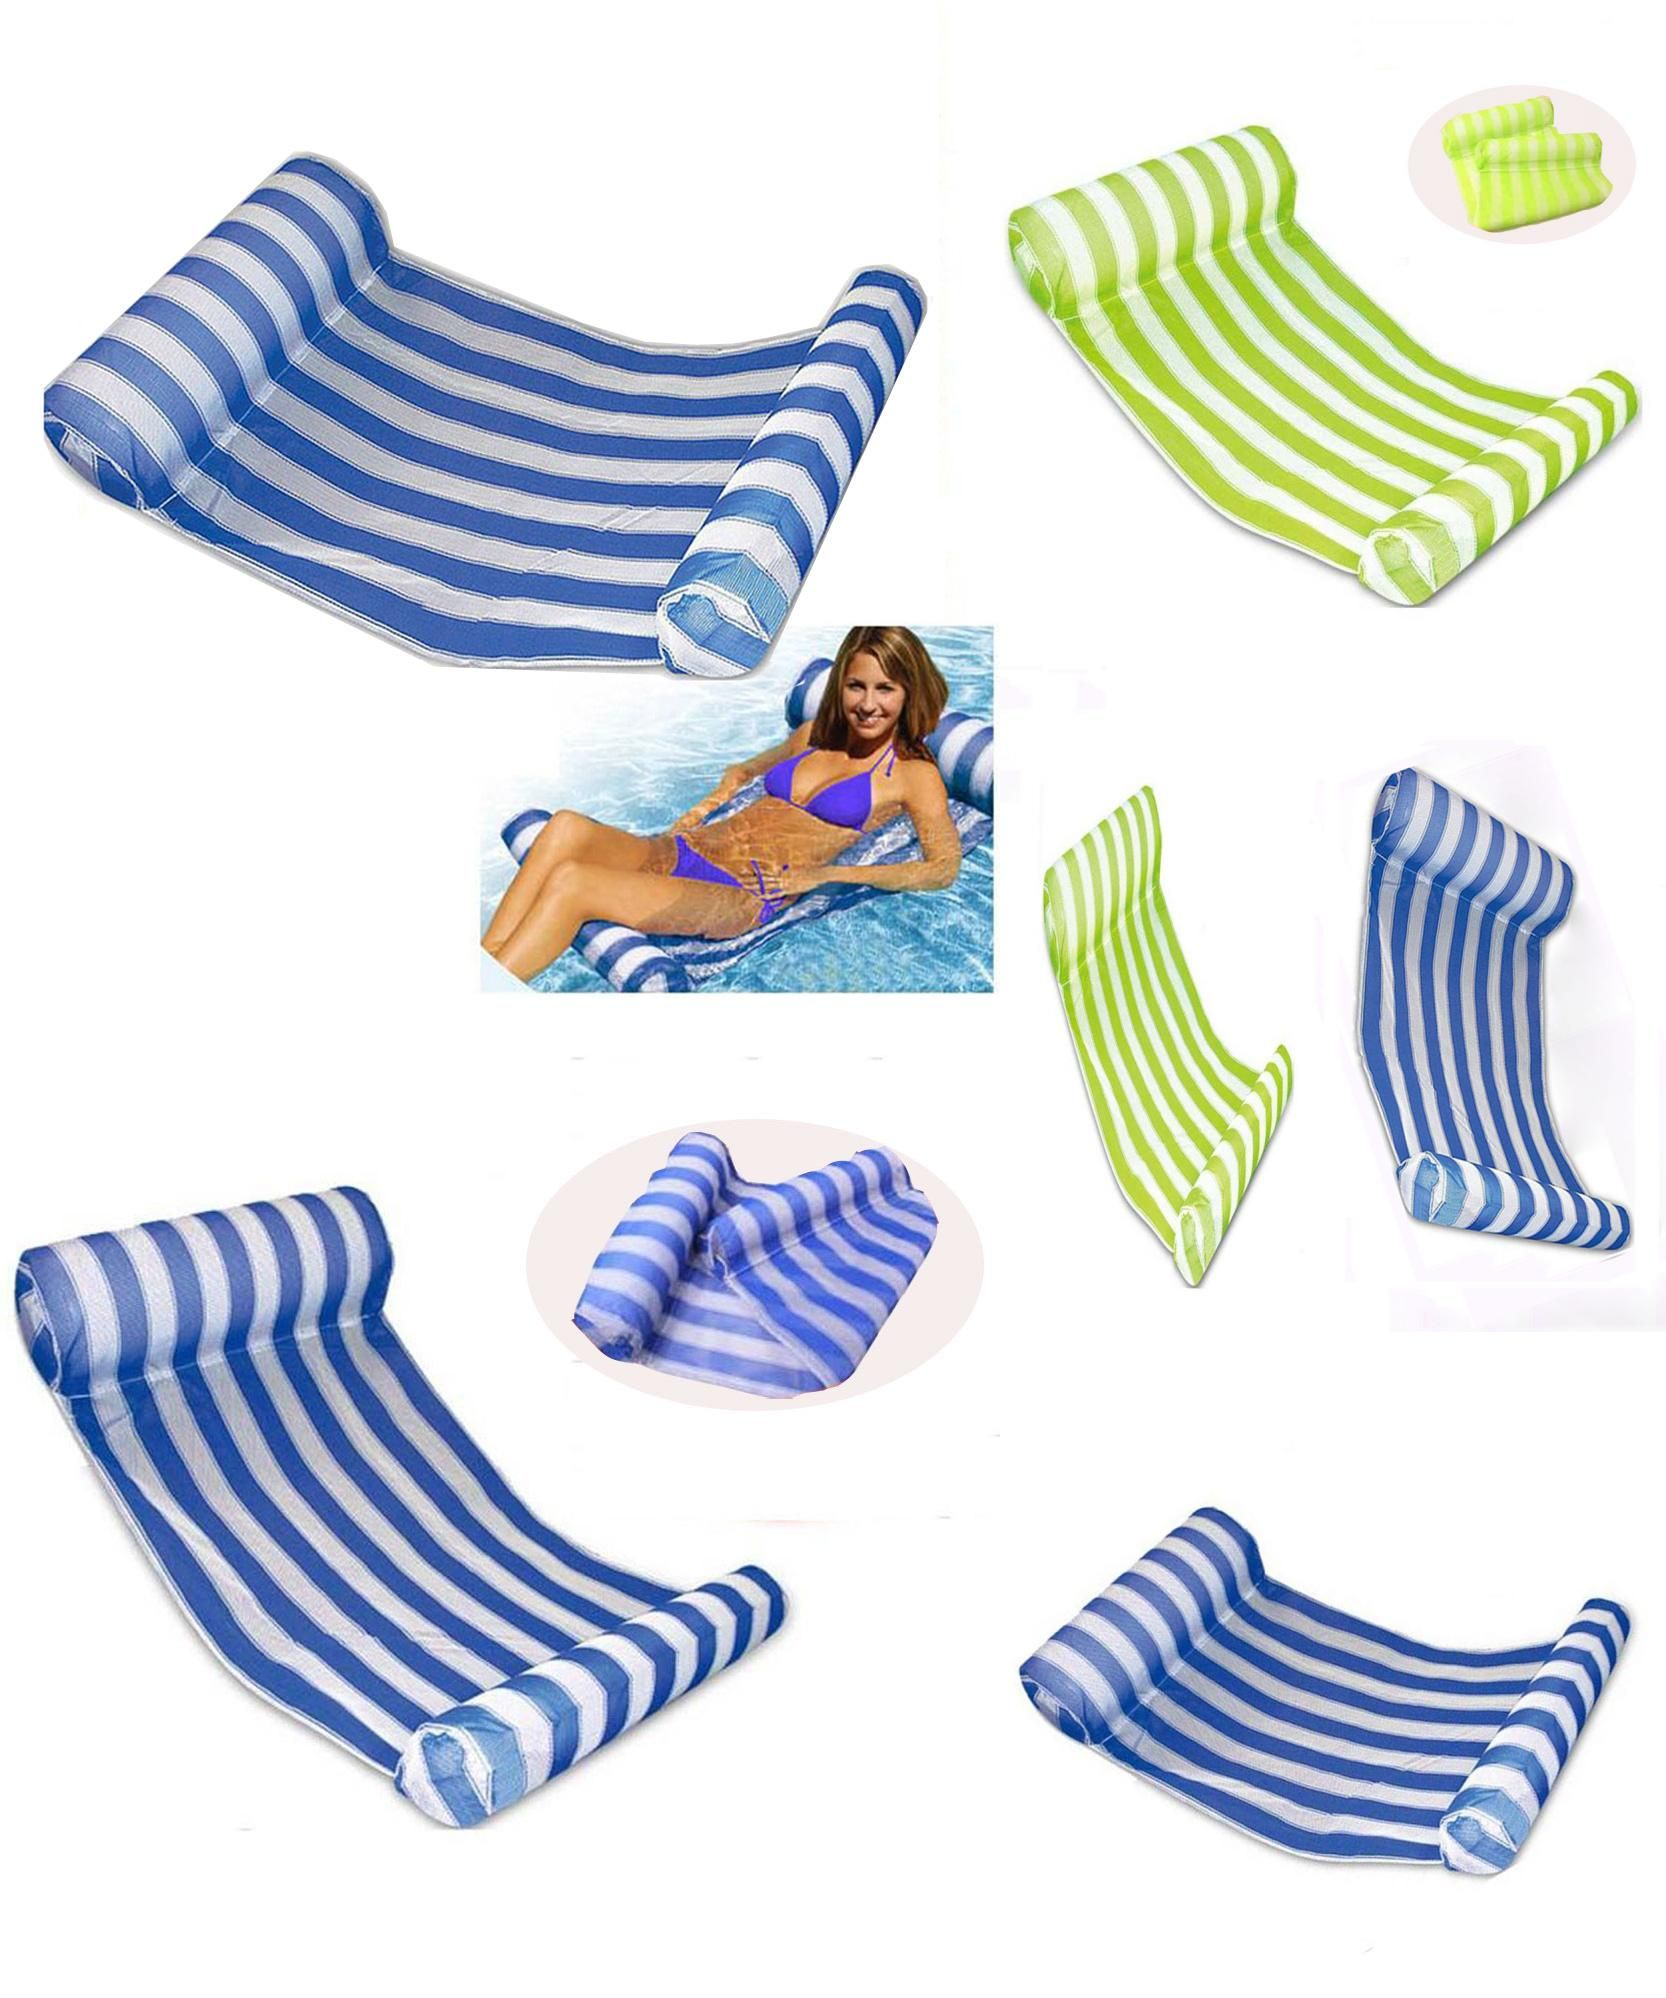 accessories inflatable water color mattress swimming pool reviews air floating float stripe sleeping outdoor hammock chair bed lounger